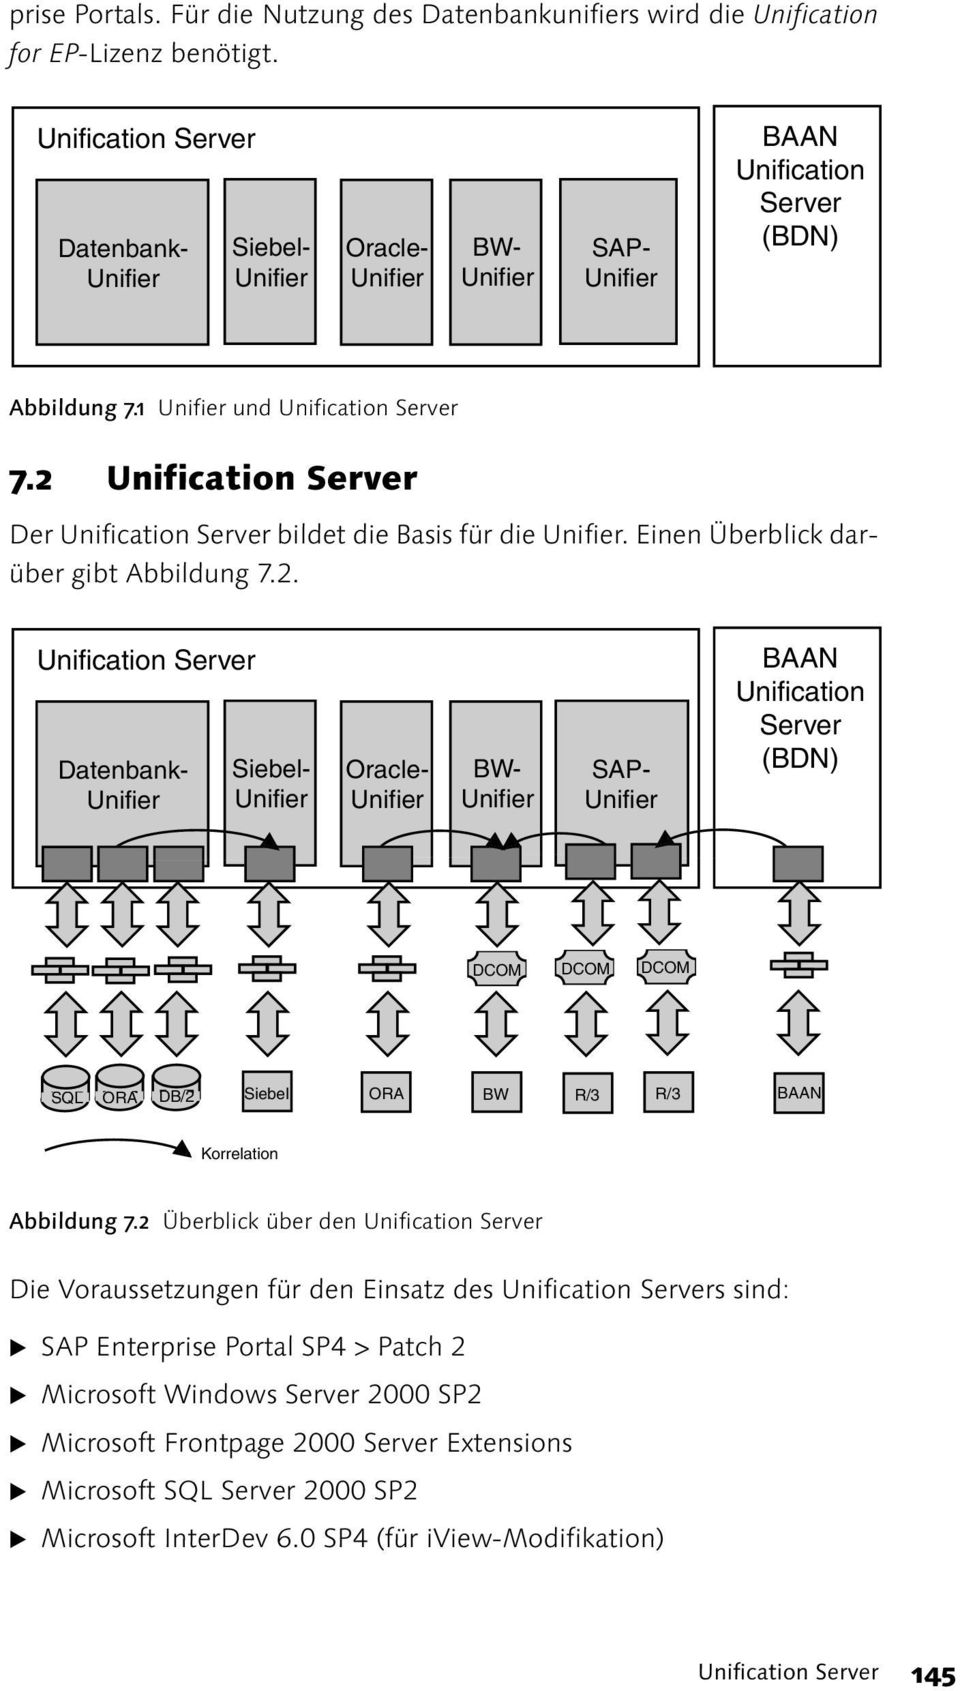 2 Unification Server Der Unification Server bildet die Basis für die Unifier. Einen Überblick darüber gibt Abbildung 7.2. Unification Server Datenbank- Unifier Siebel- Unifier Oracle- Unifier BW-